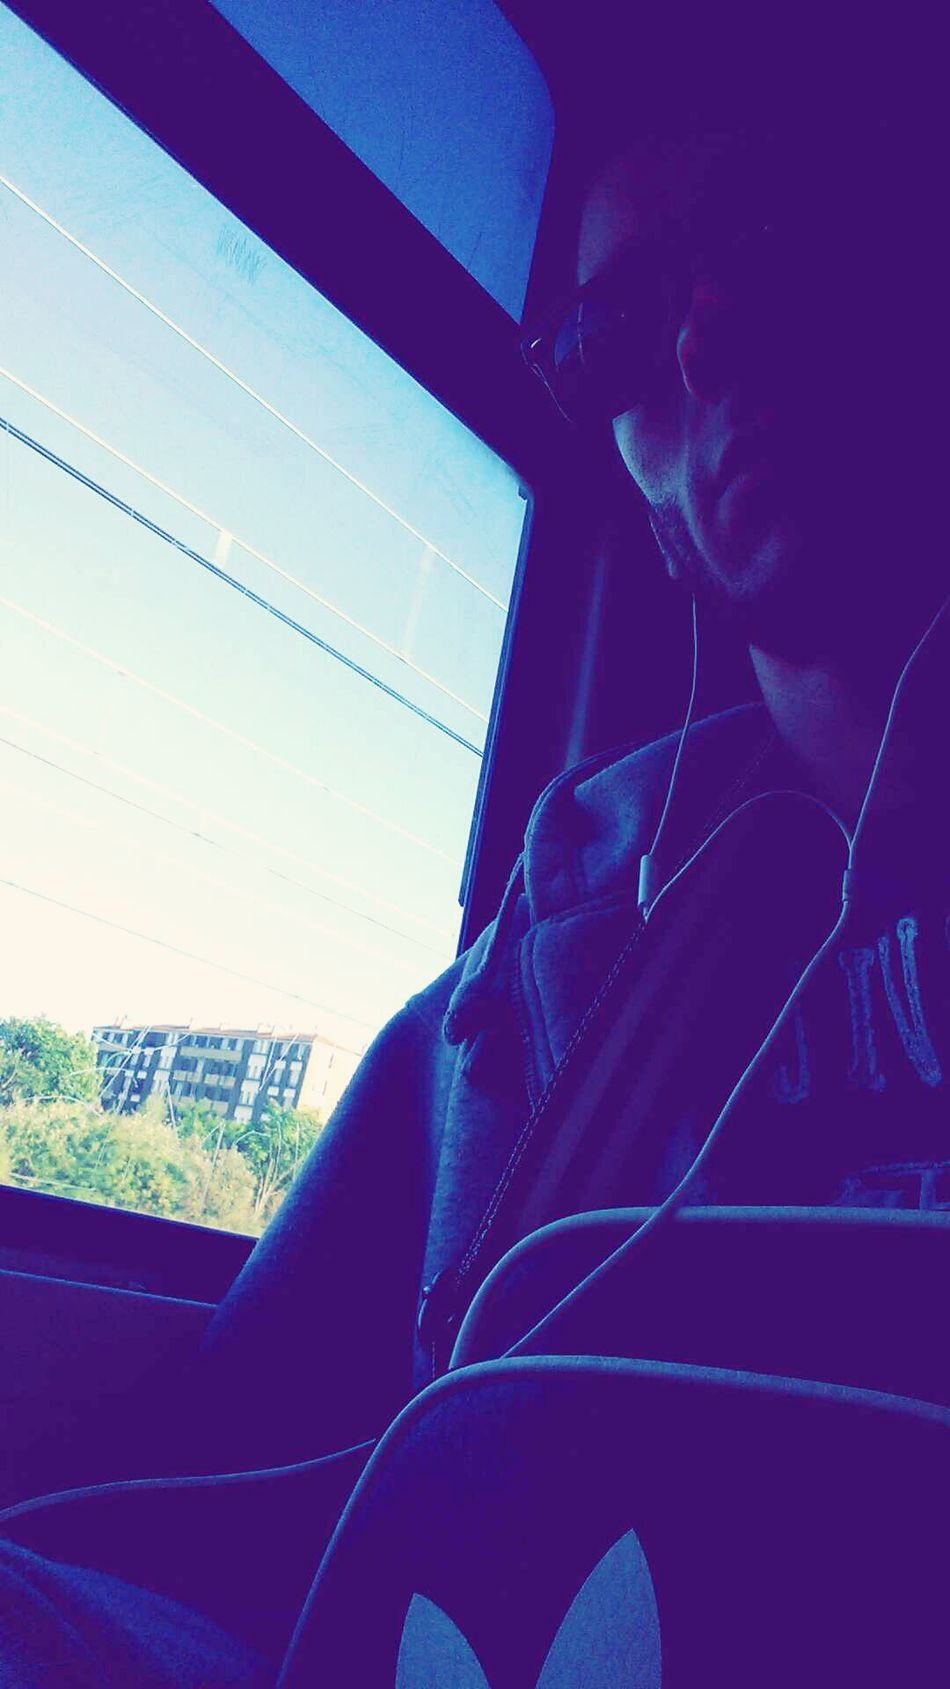 Traffic RER D Frenchcloutboyz Sun Hello World That's Me Taking Photos Picture